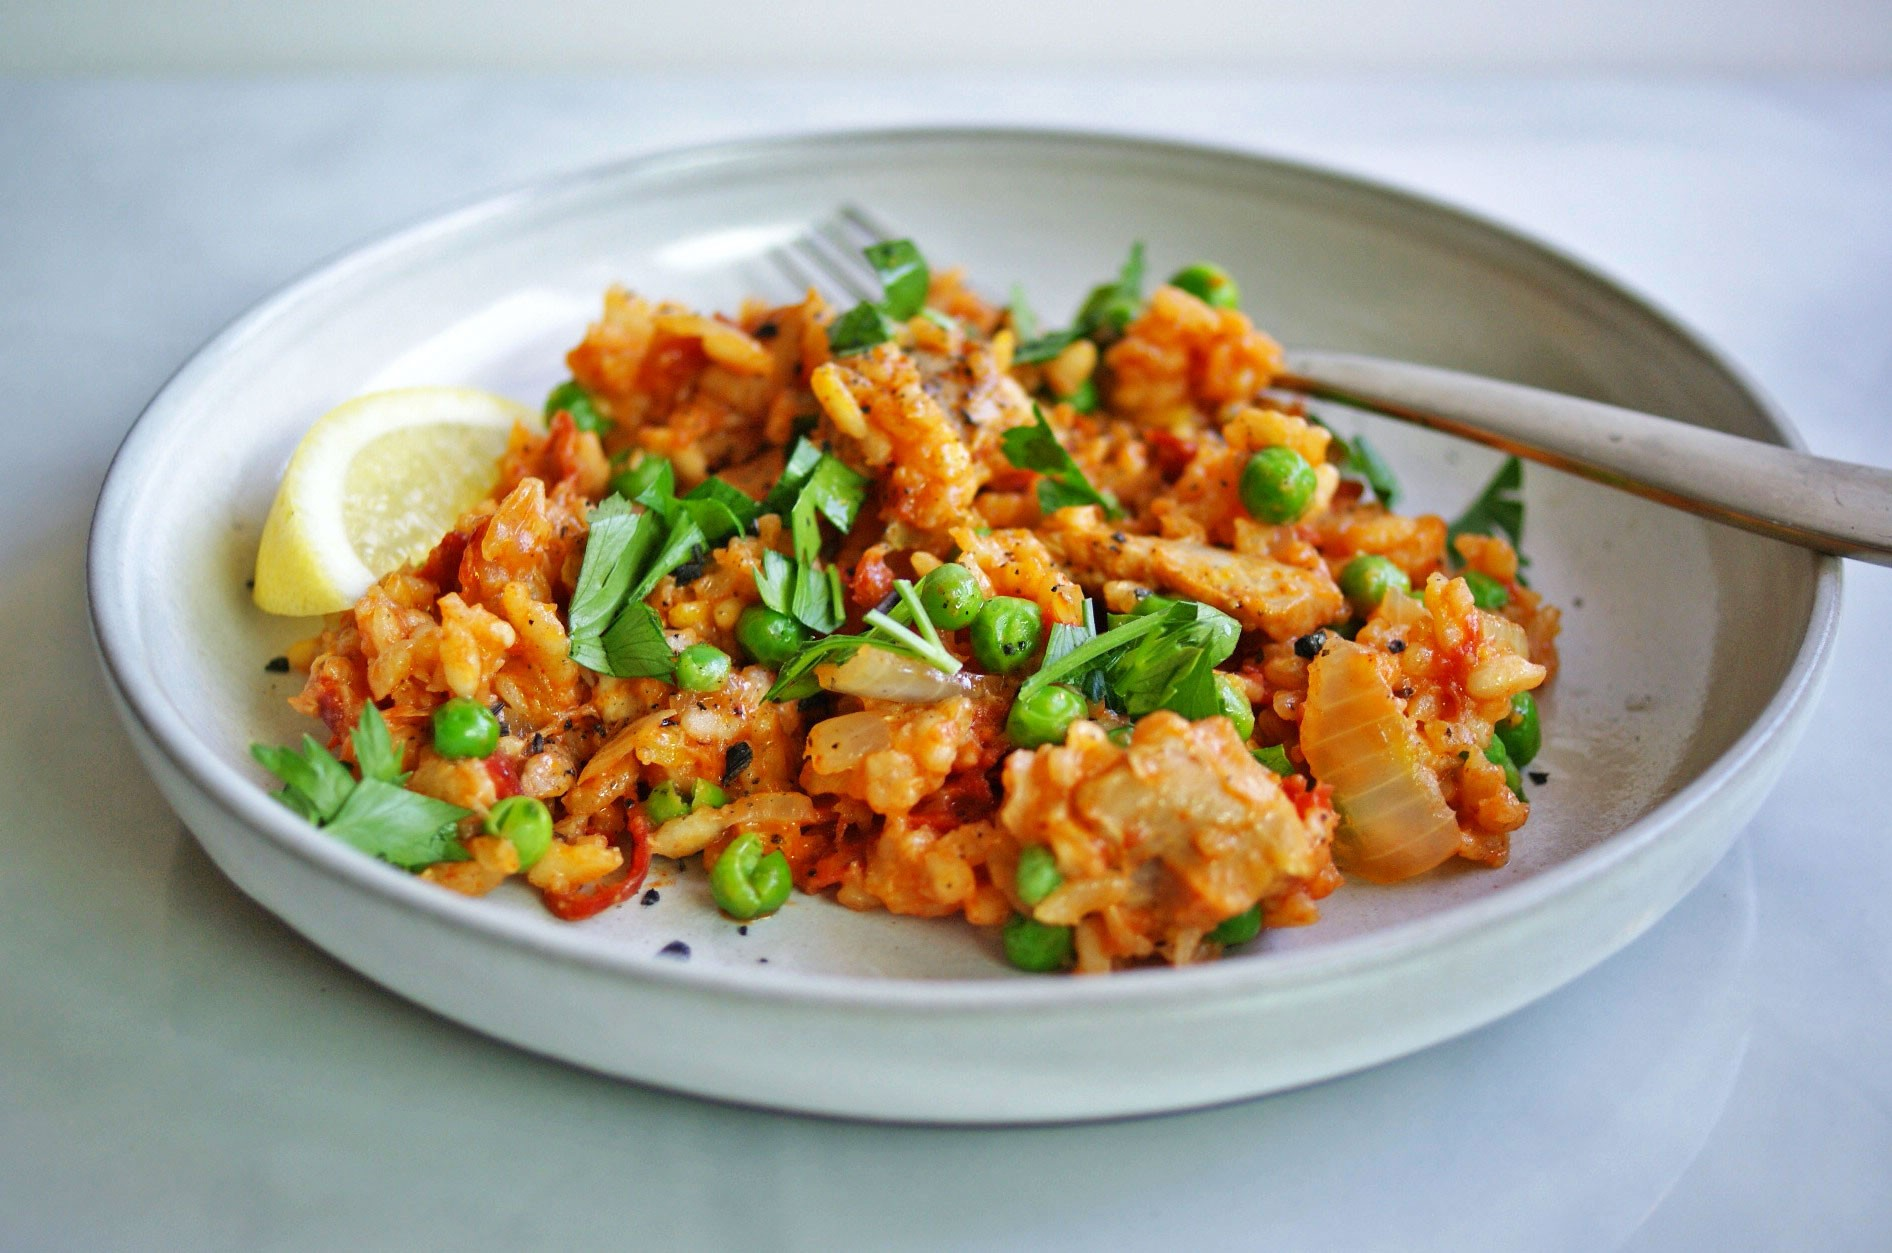 Watch Slow Cooker Paella video